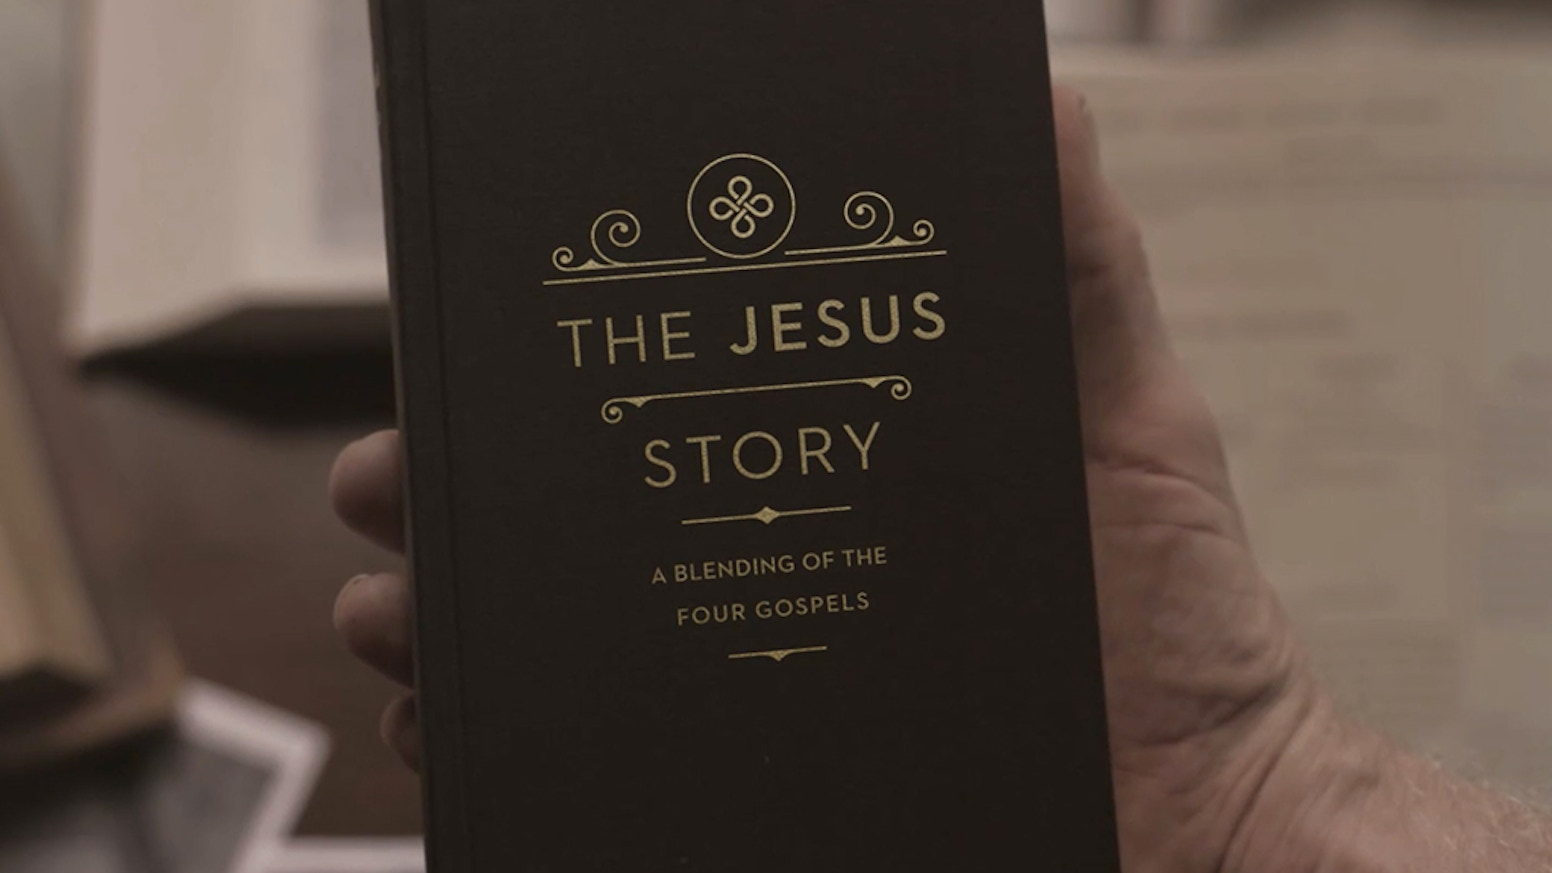 The Jesus Story blends all four Gospel accounts into a single harmonious narrative while capturing the essence of every writer.